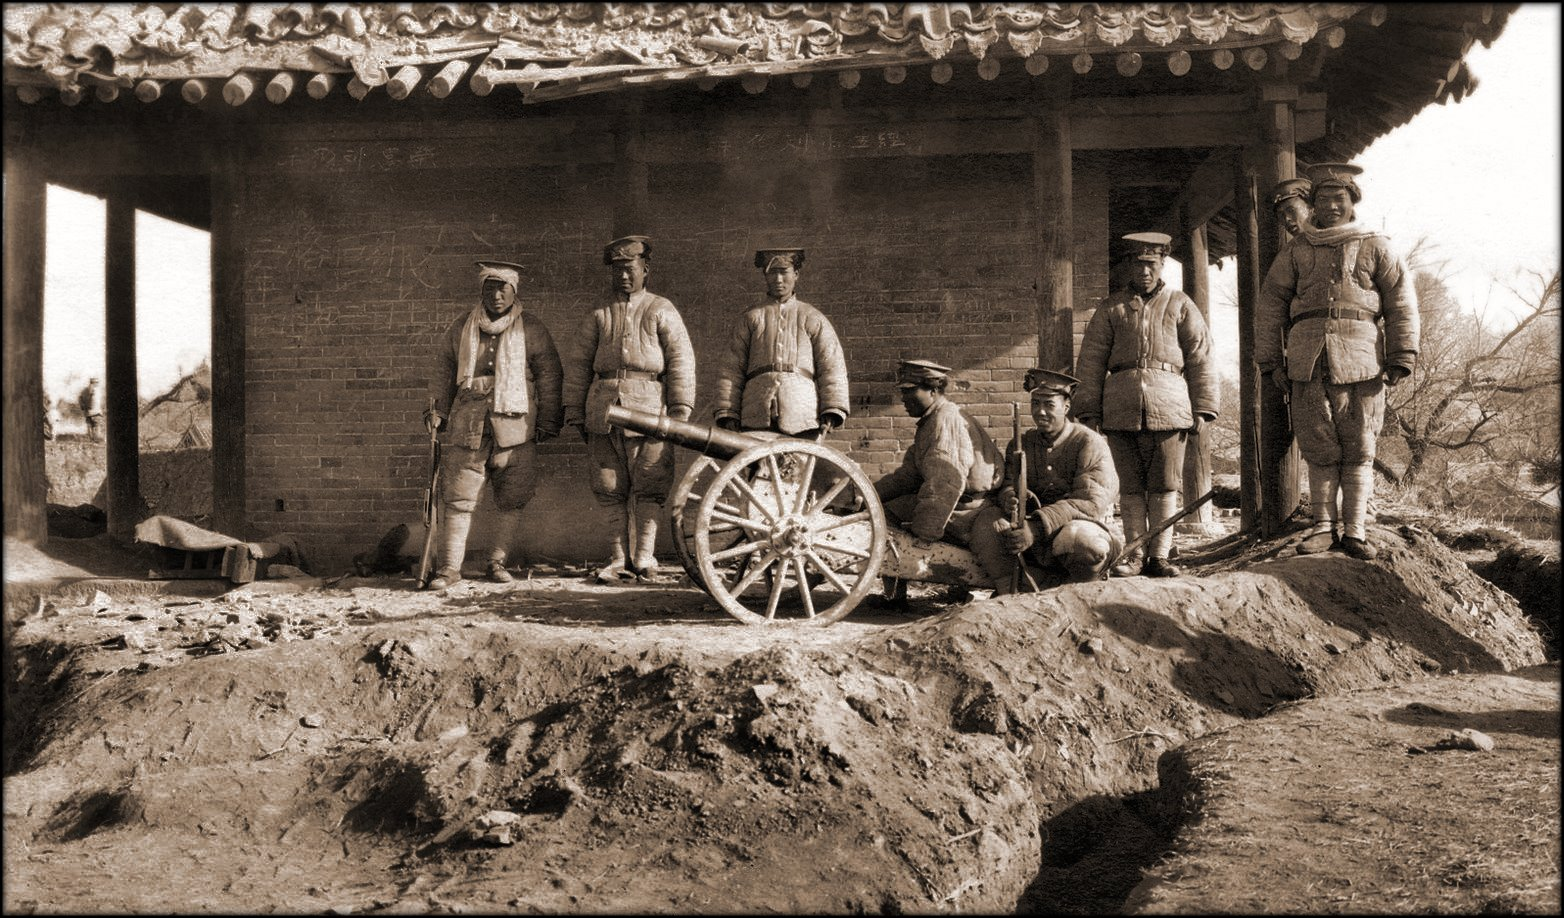 Yen's Soldiers, Militarism In China, Here Are Specimens Of The Soldiery Who Protect The People By Dominating Them, Who Protect Property By Looting It, Liao Chow, Shansi, China [c1925] IE Oberholtzer (probable) [RESTORED]